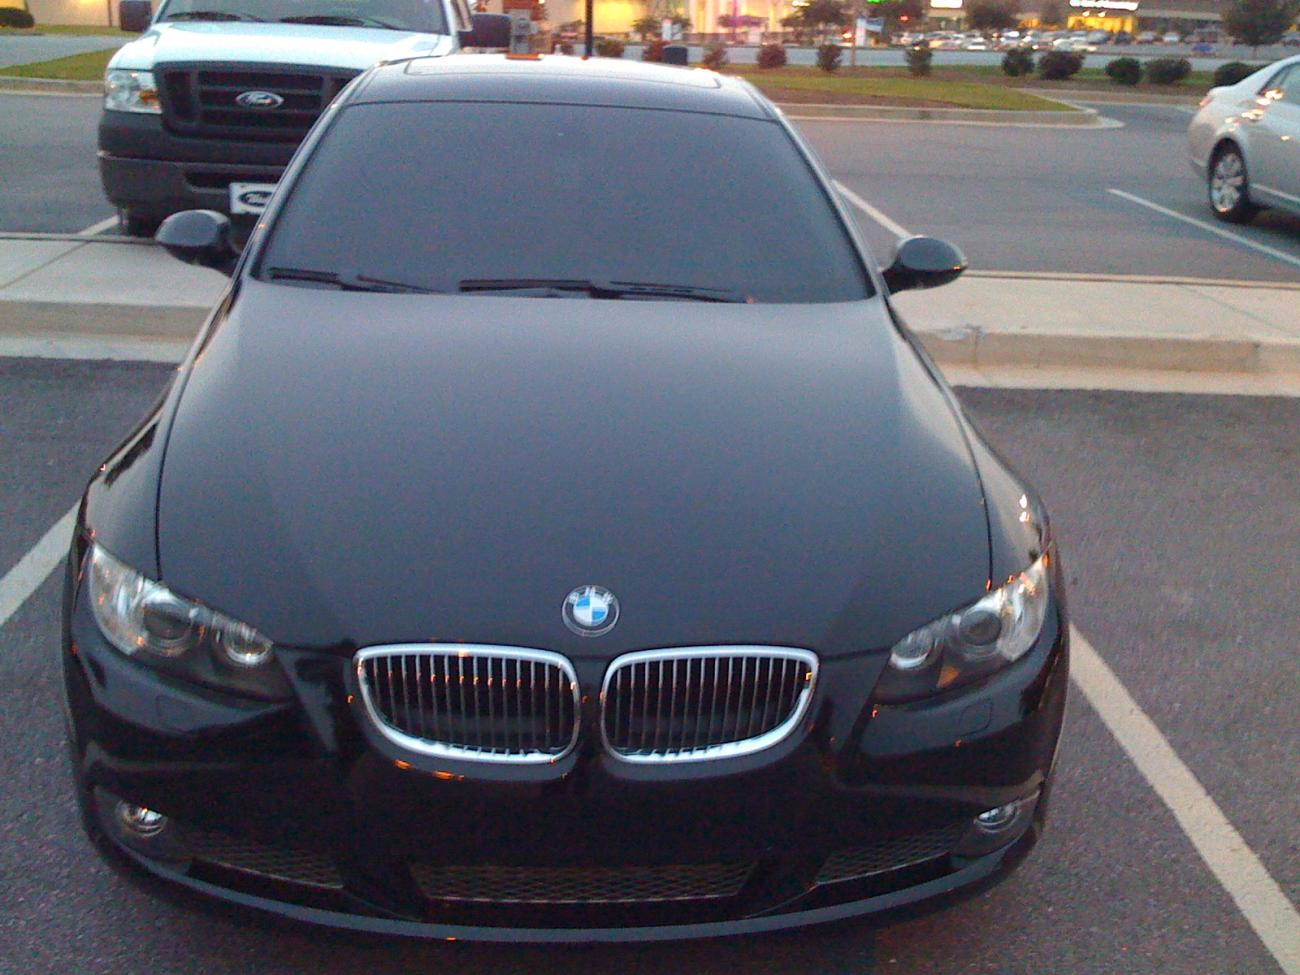 35 Windshield Tint >> My Tint 5 All Around And 35 On Windshield Bmw 3 Series